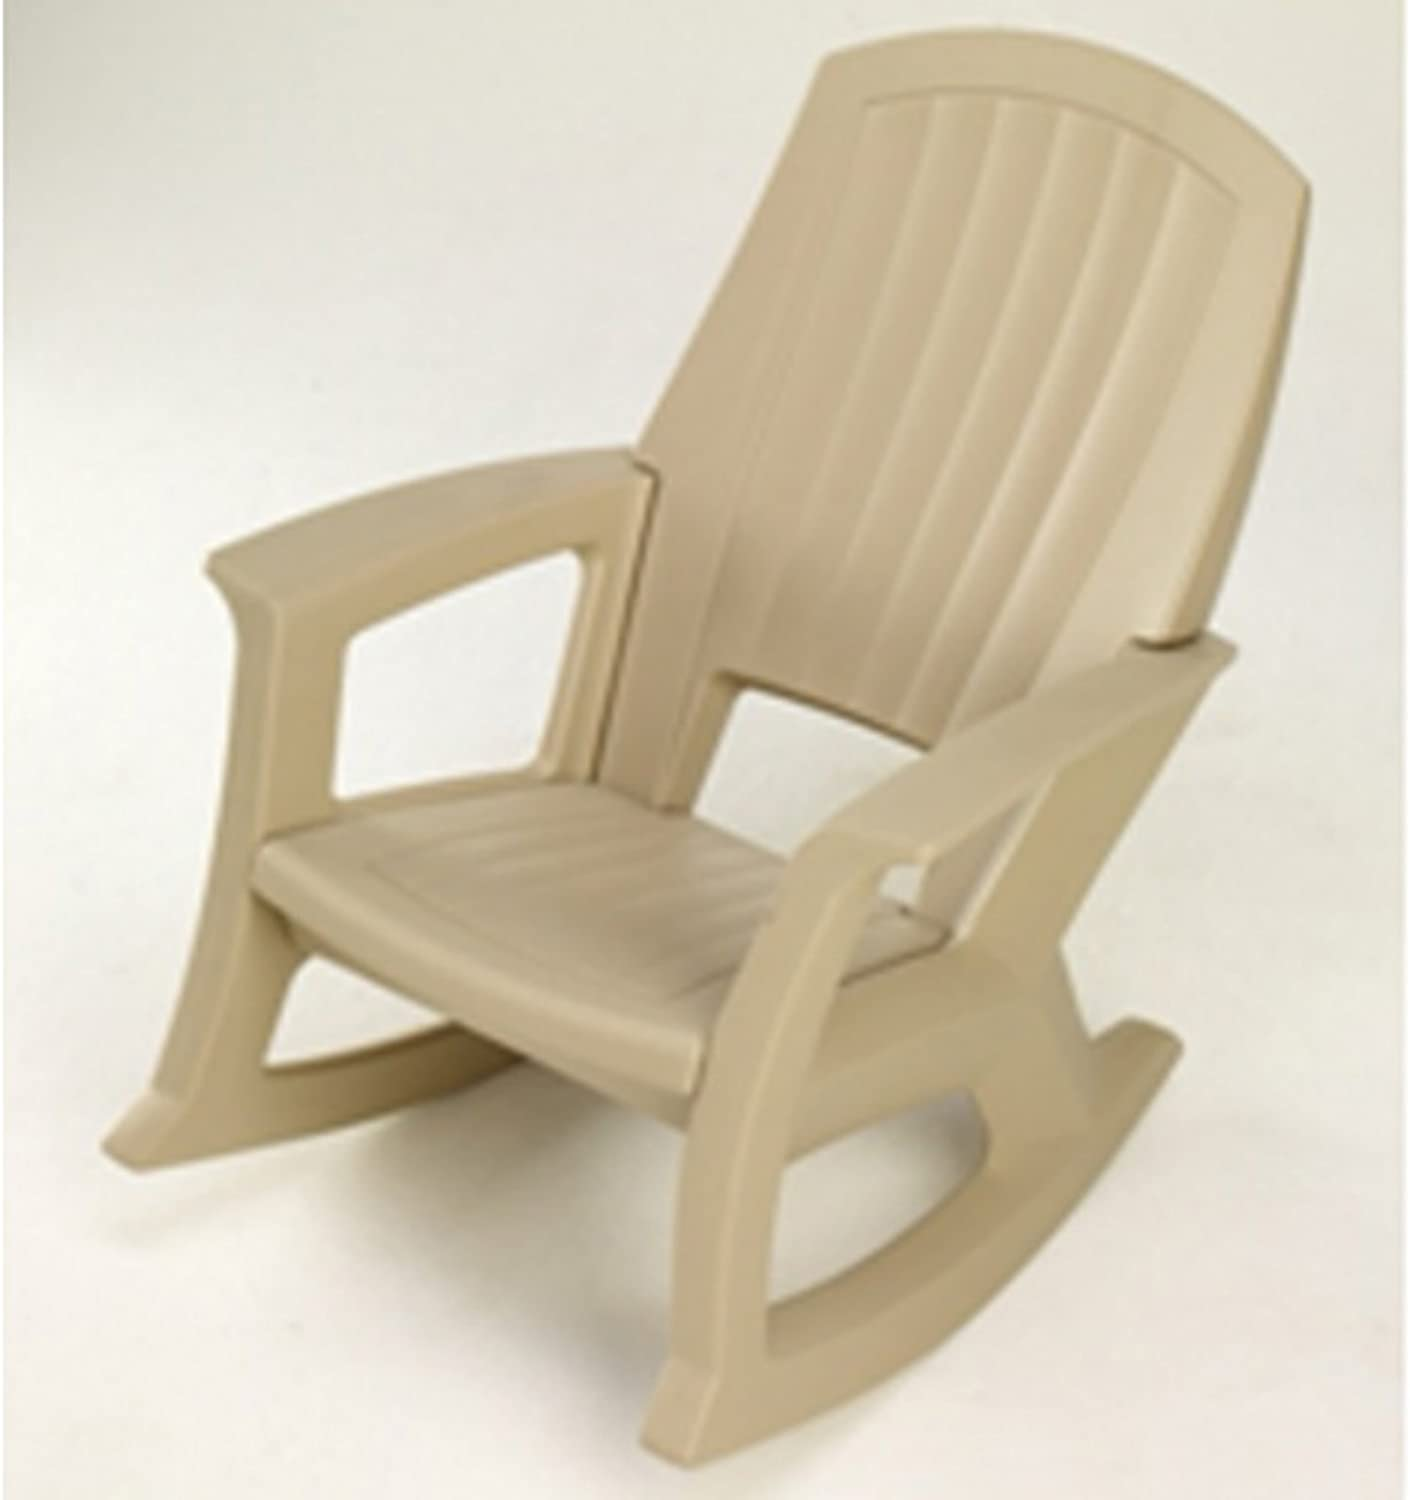 Semco Plastics SEMS Extra Large Recycled Plastic Resin Durable Outdoor Patio Rocking Chair, Sand Tan : Garden & Outdoor